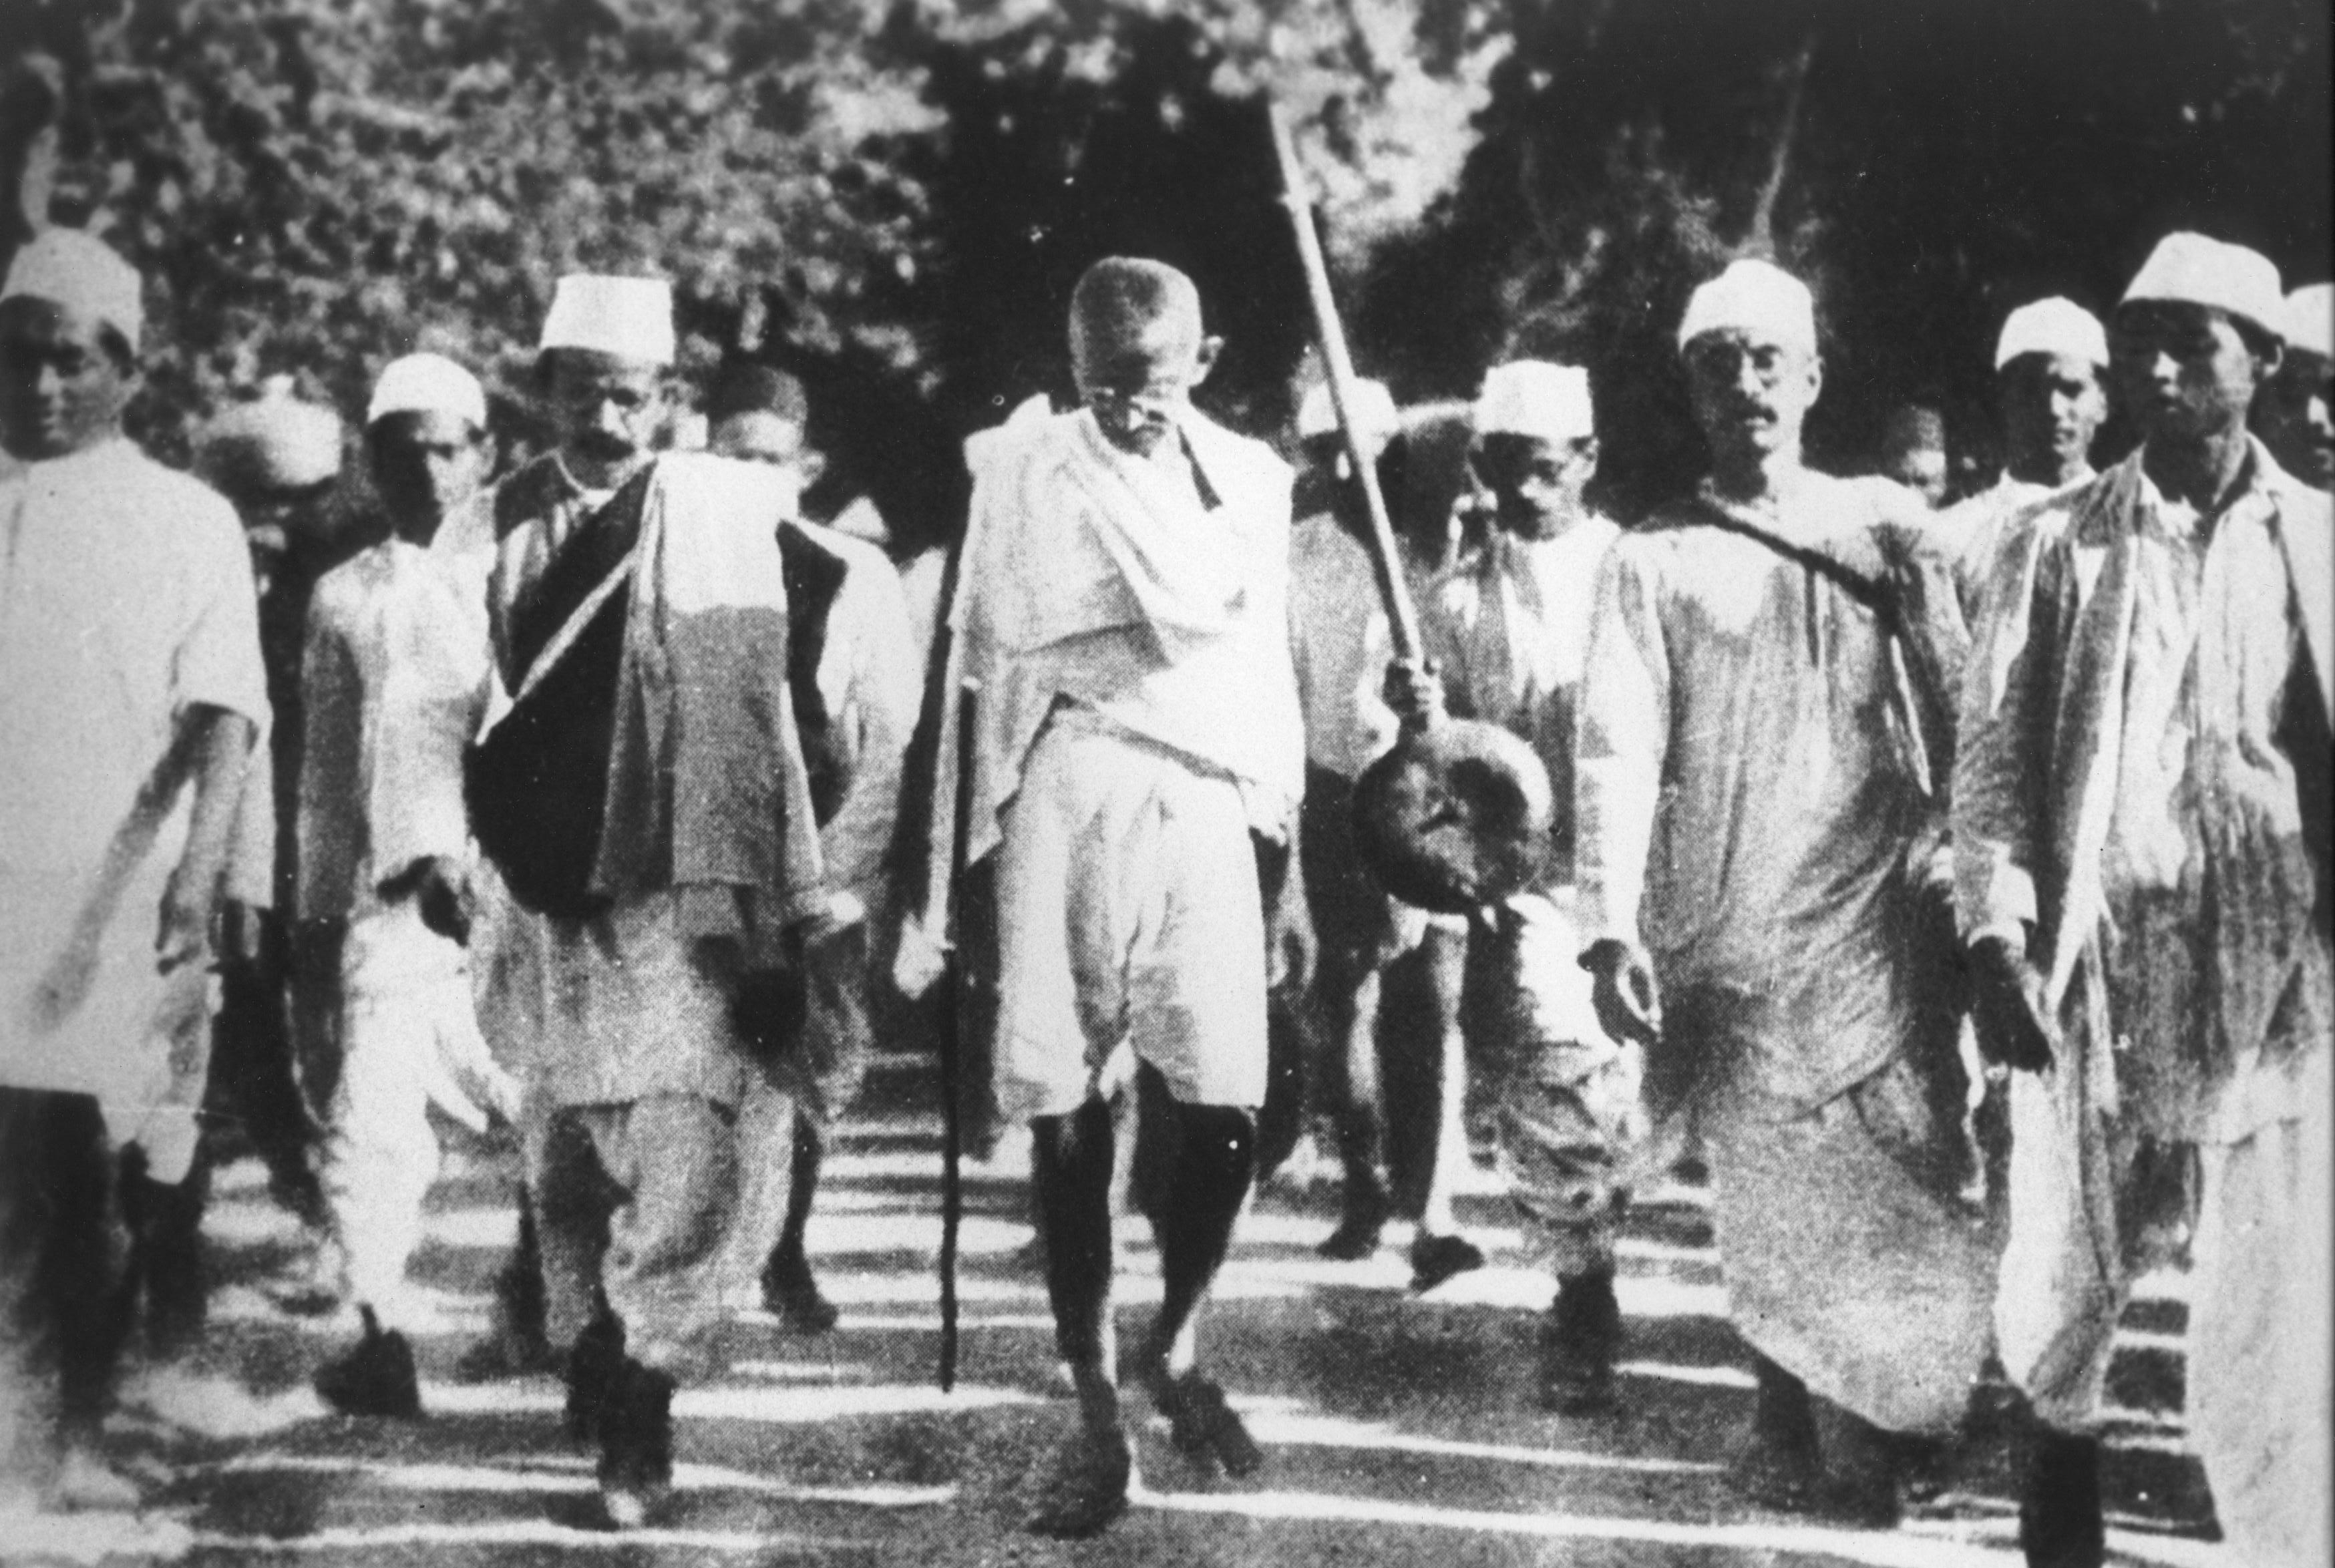 Gandhi during the Salt March, 1930